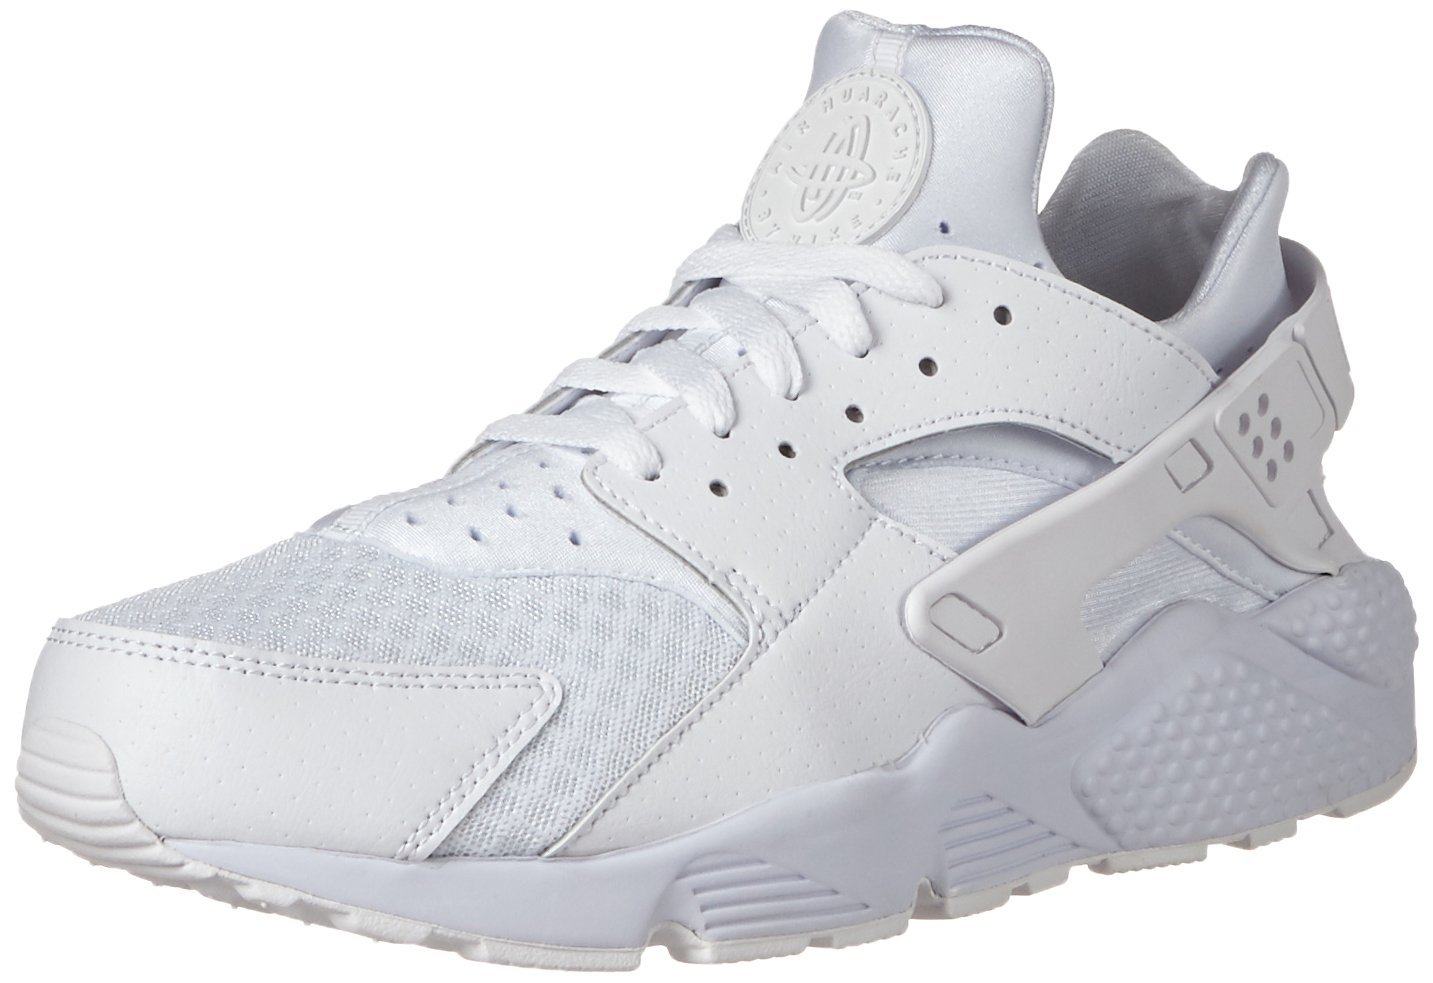 new style 2903c d6225 germany nike 318429 111 mens air huarache exclusive flint spin fabric  trainer sneaker 11 ade0c 91094